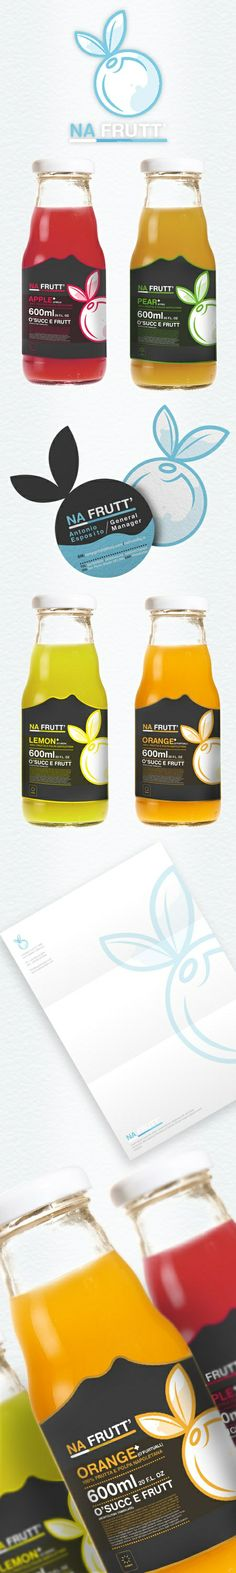 This label design is very creative with the little bit of simple cutout at the top of the label making it effective because it is different.